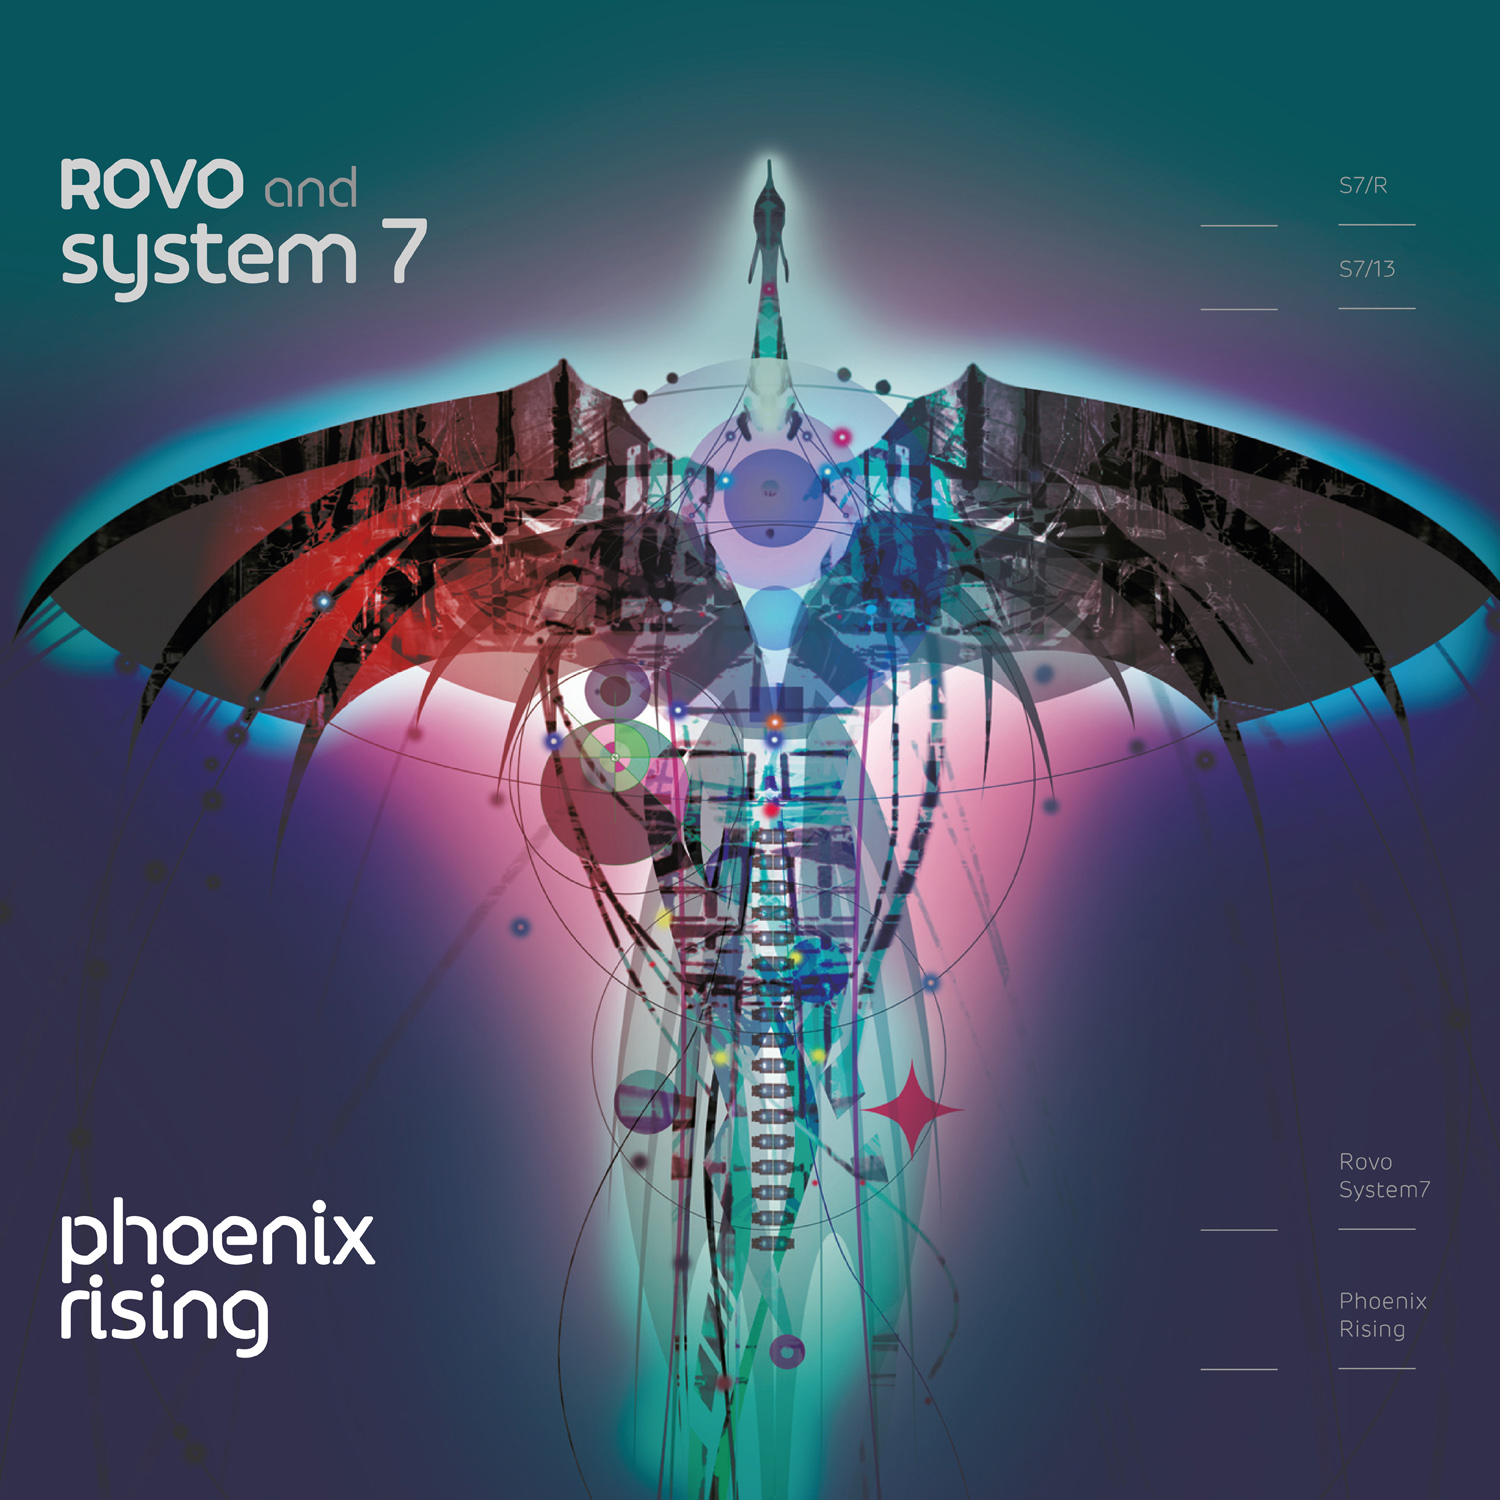 Guitar Legend Steve Hillage To Release New Rovo And System 7 Rock-orientated Album Phoenix Rising